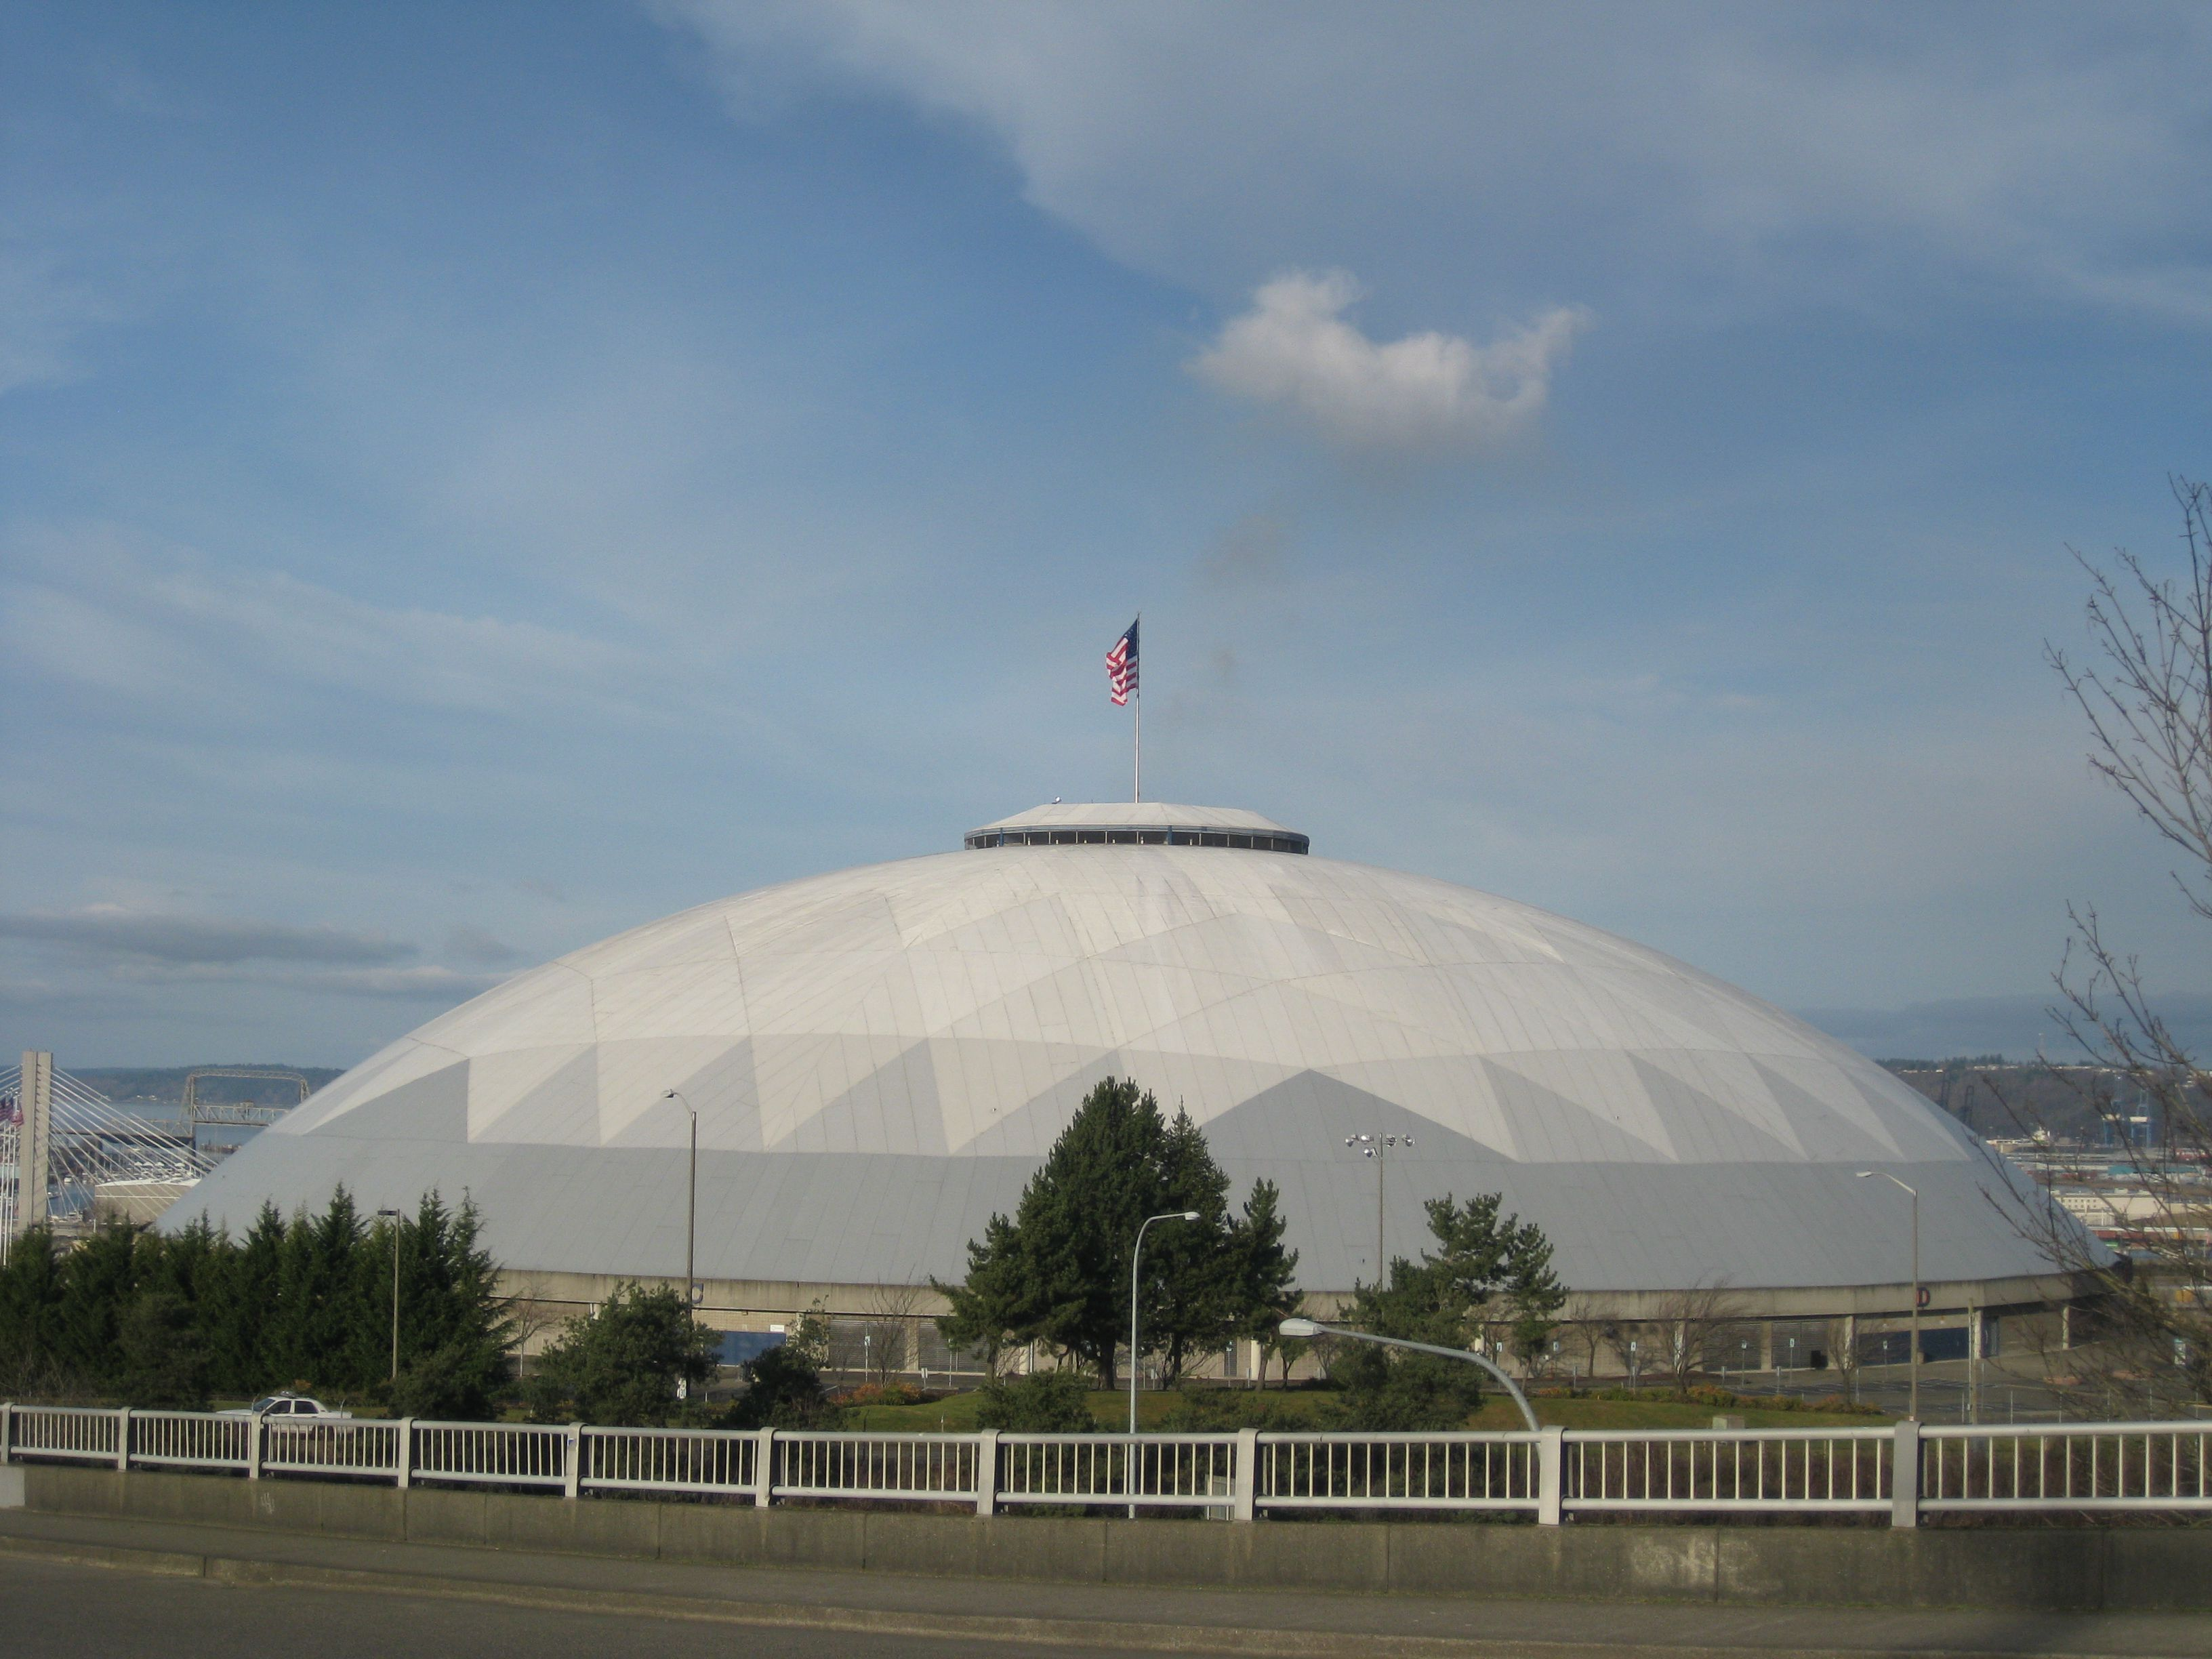 Tacoma Dome One Of Tacoma S Most Recognizable Landmarks